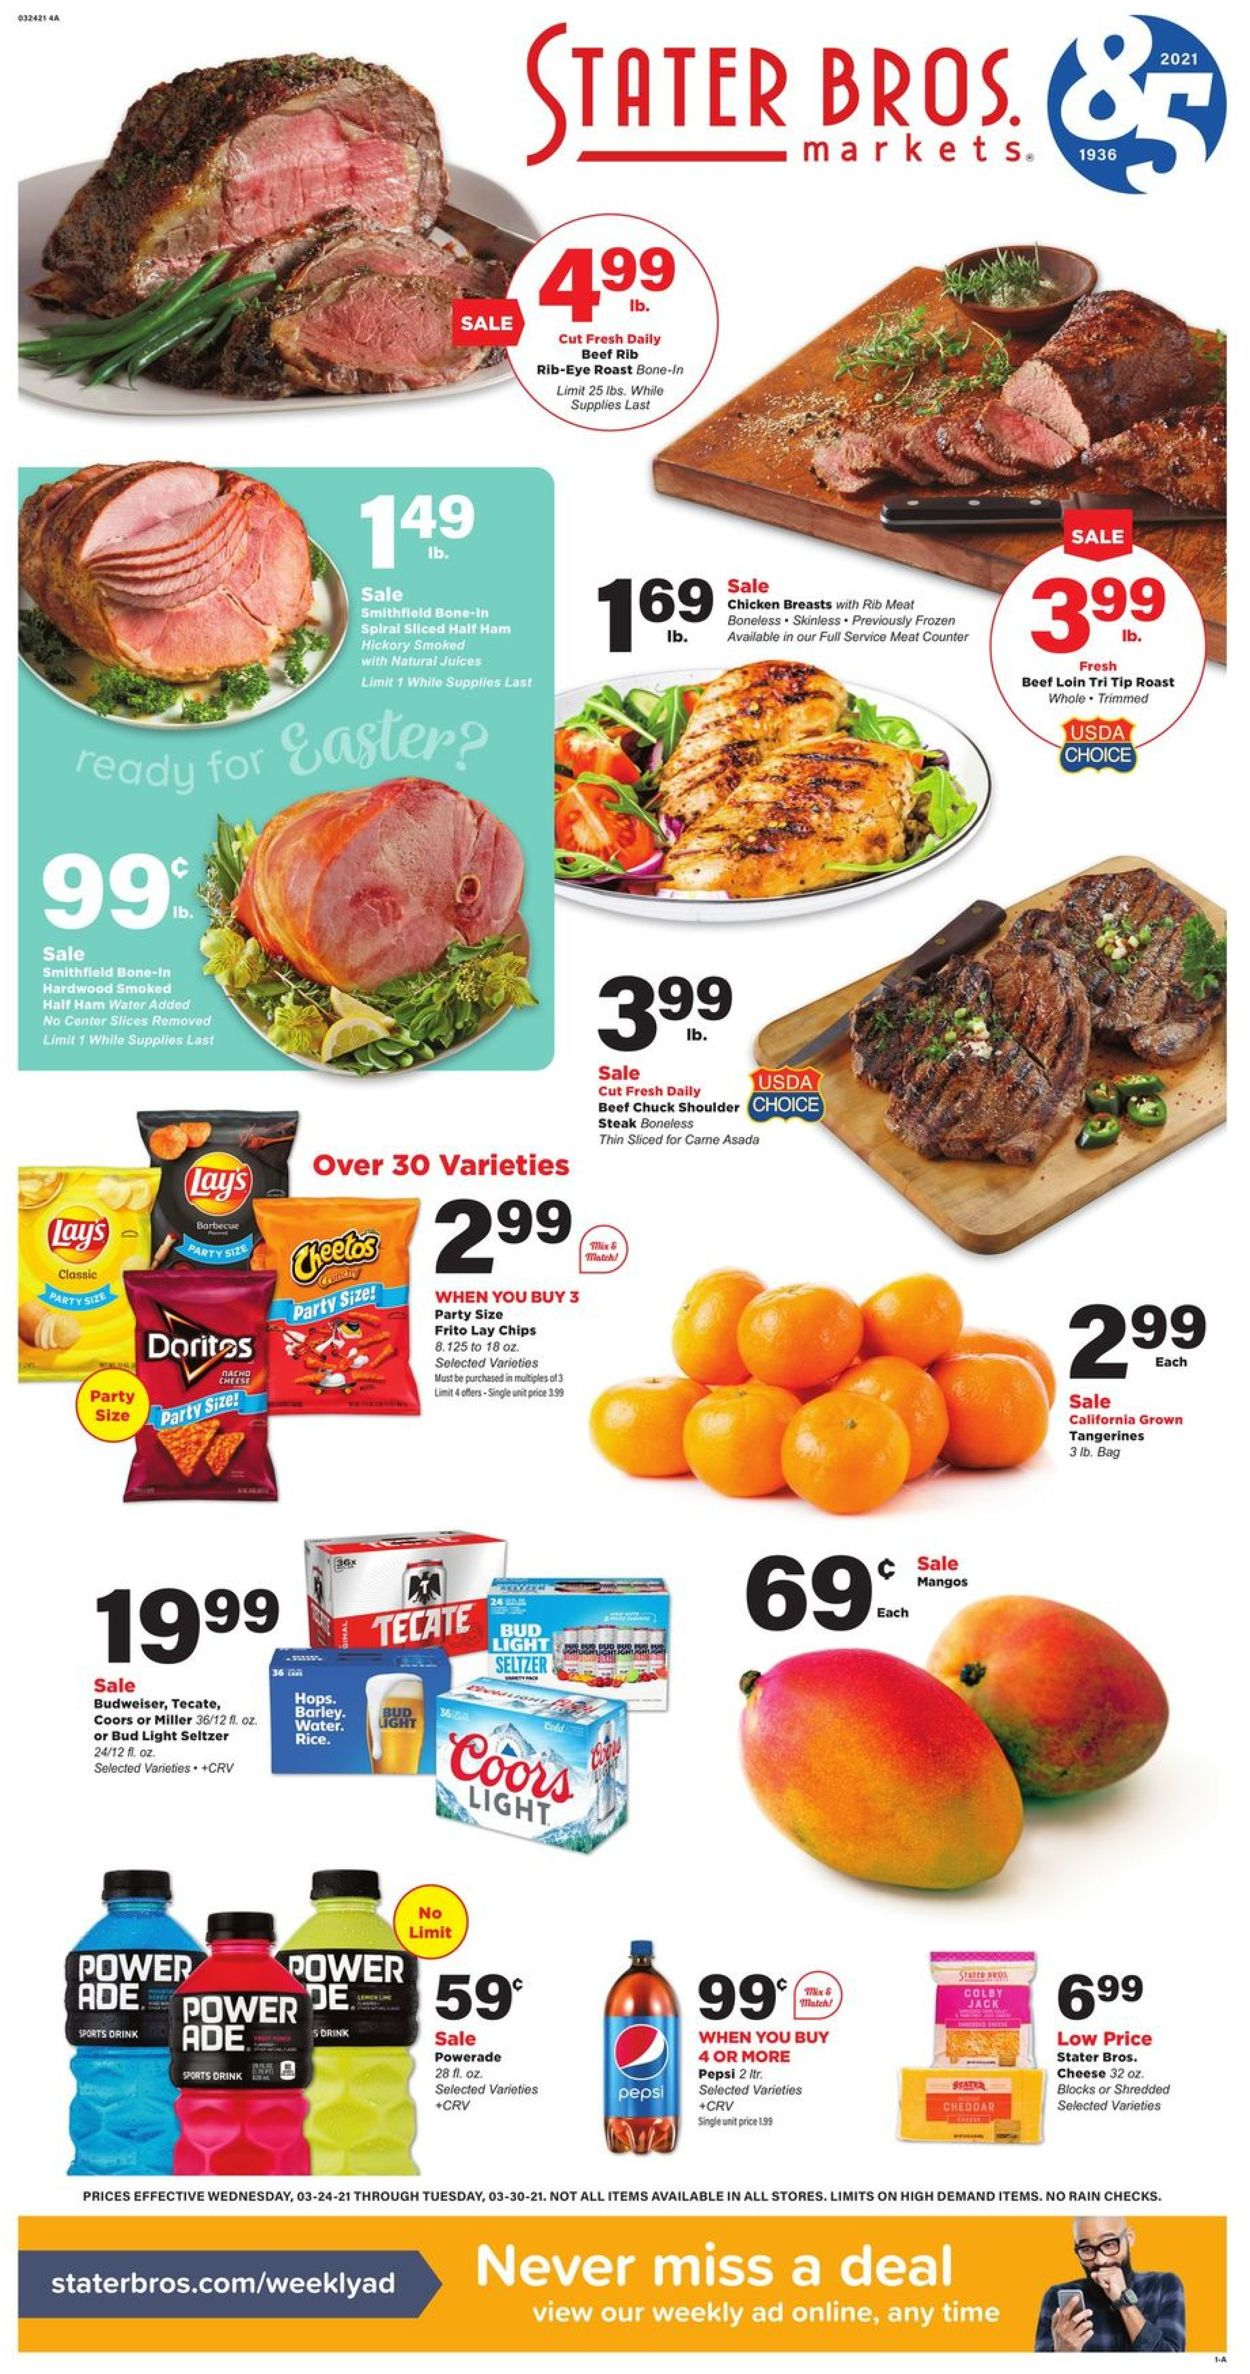 Stater Bros. - Easter 2021 Ad Weekly Ad Circular - valid 03/24-03/30/2021